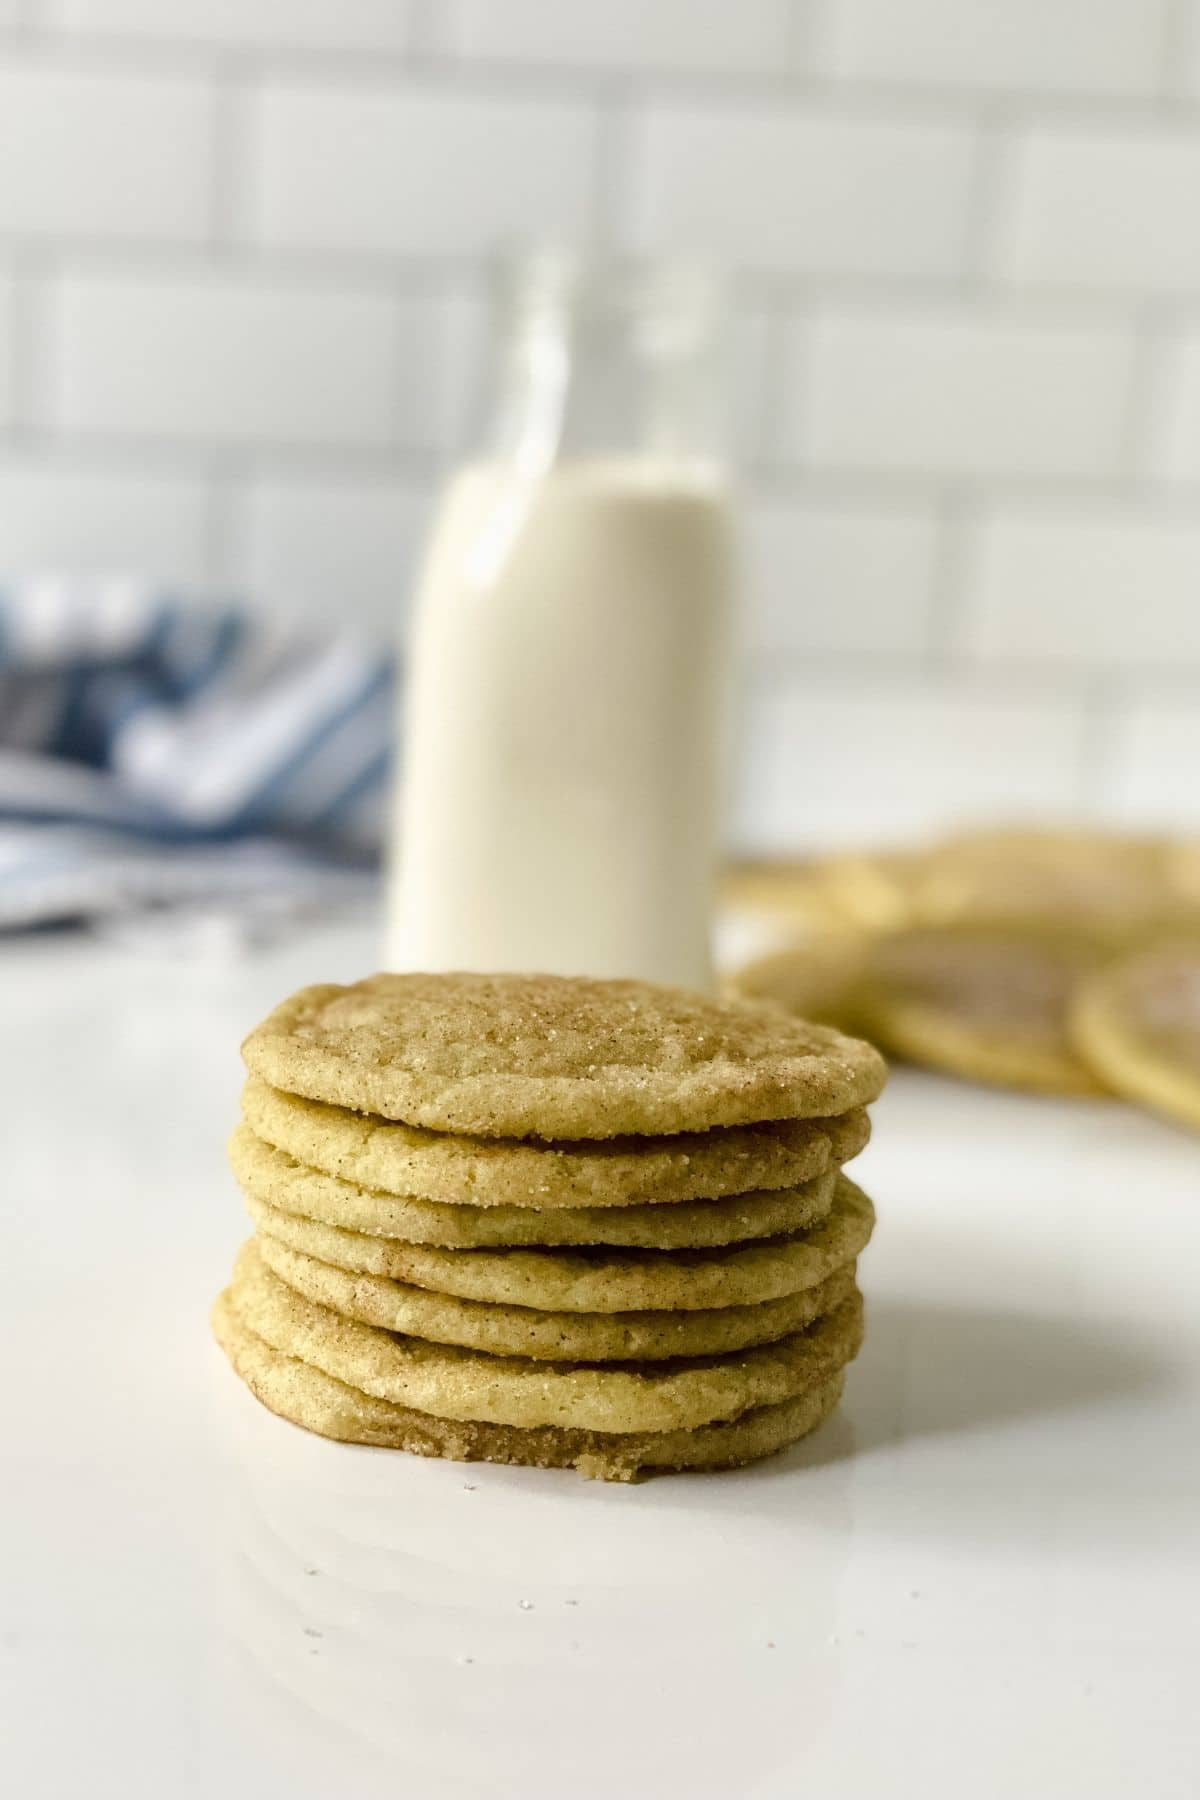 stack of cookies on white table in front of bottle of milk